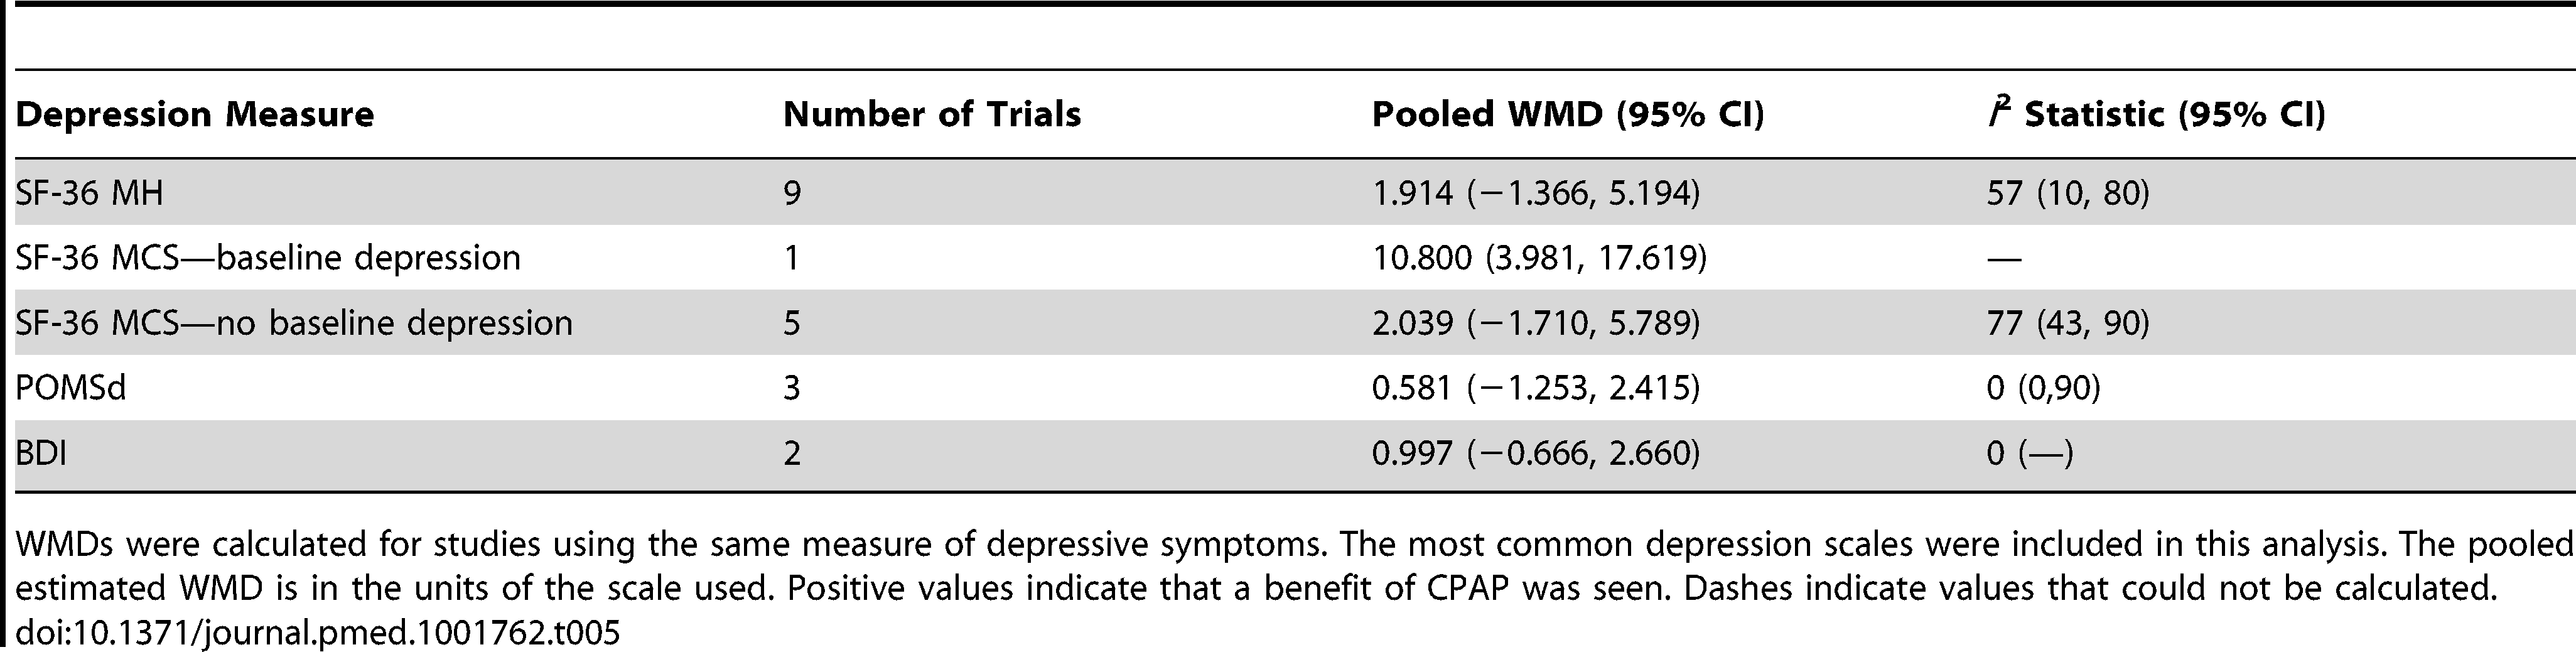 Pooled weighted mean differences in depression score for CPAP treatment.